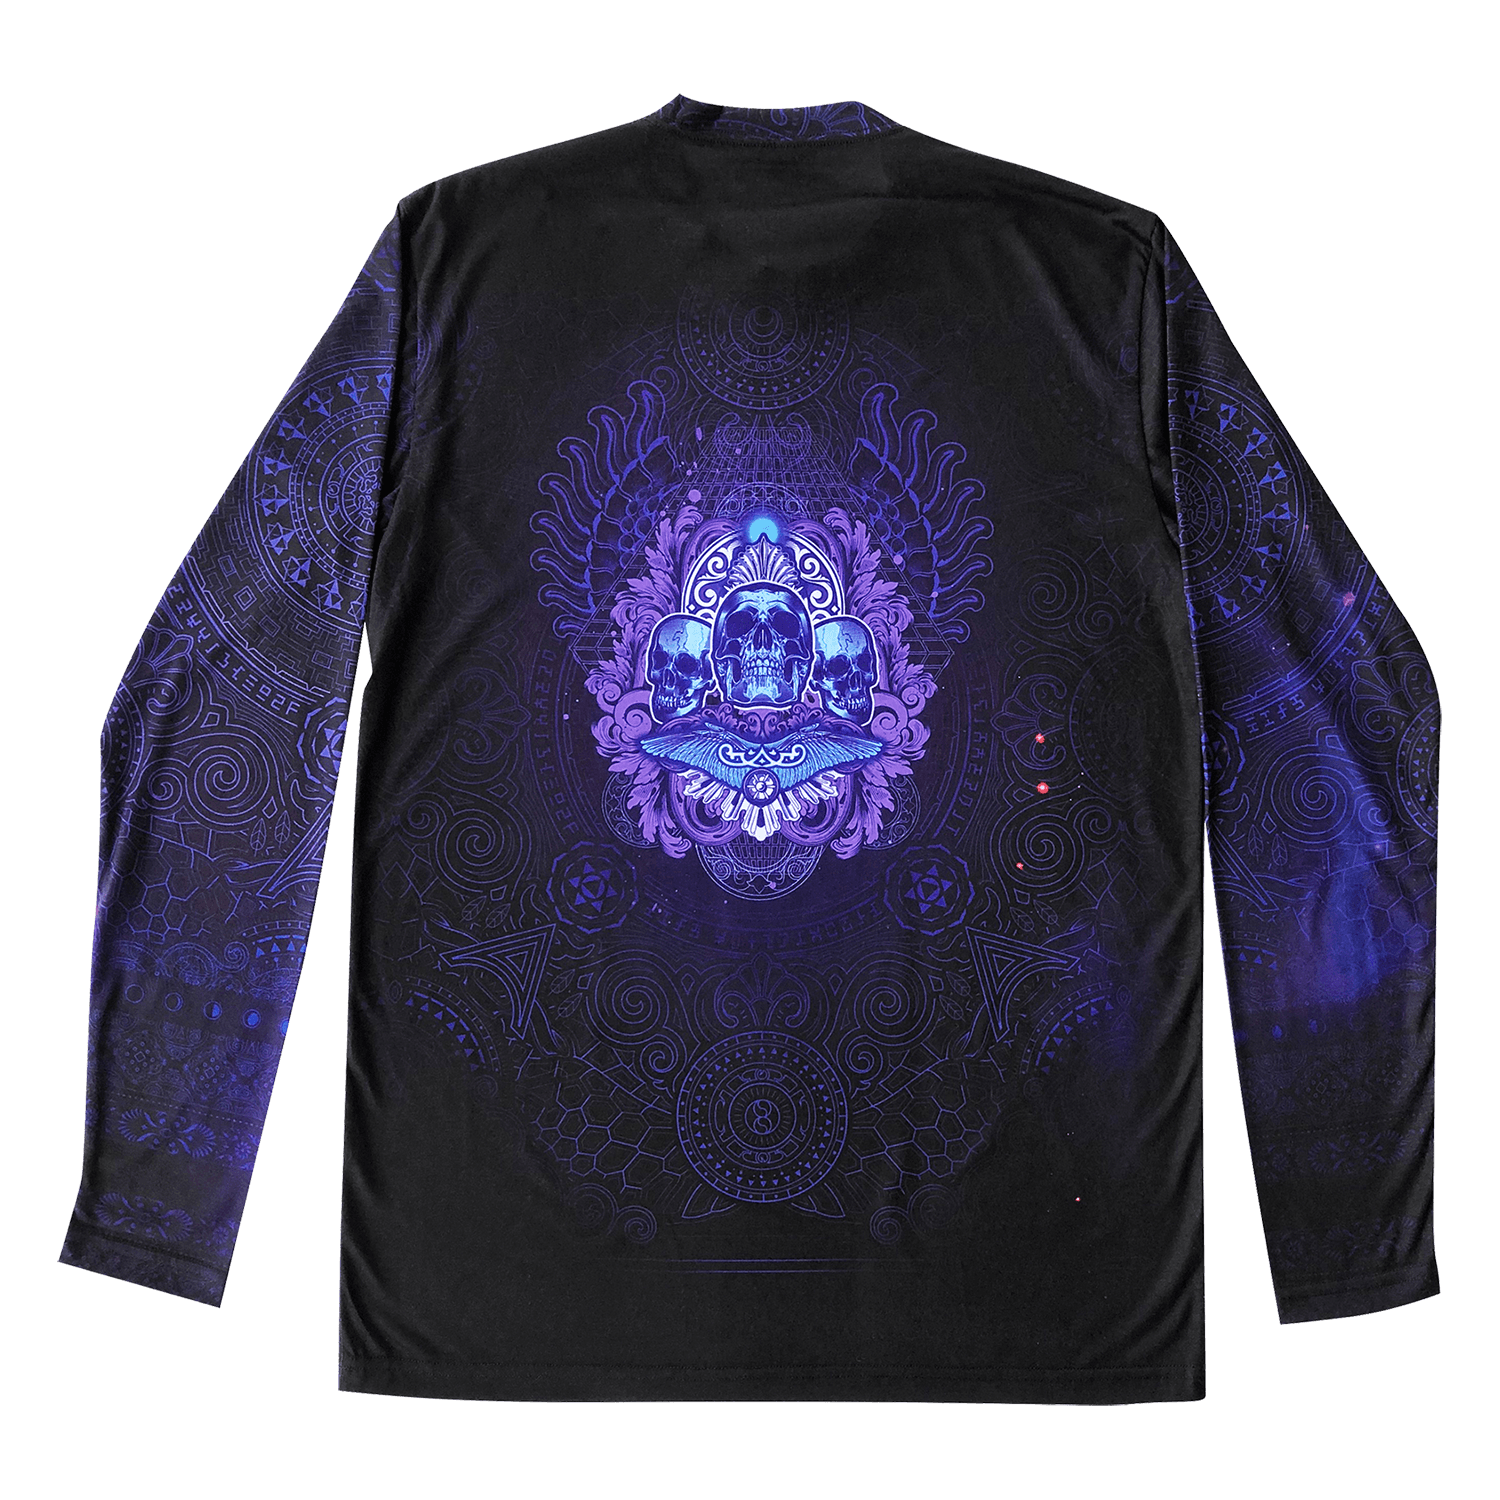 Skull Altar Long Sleeve Shirt 3